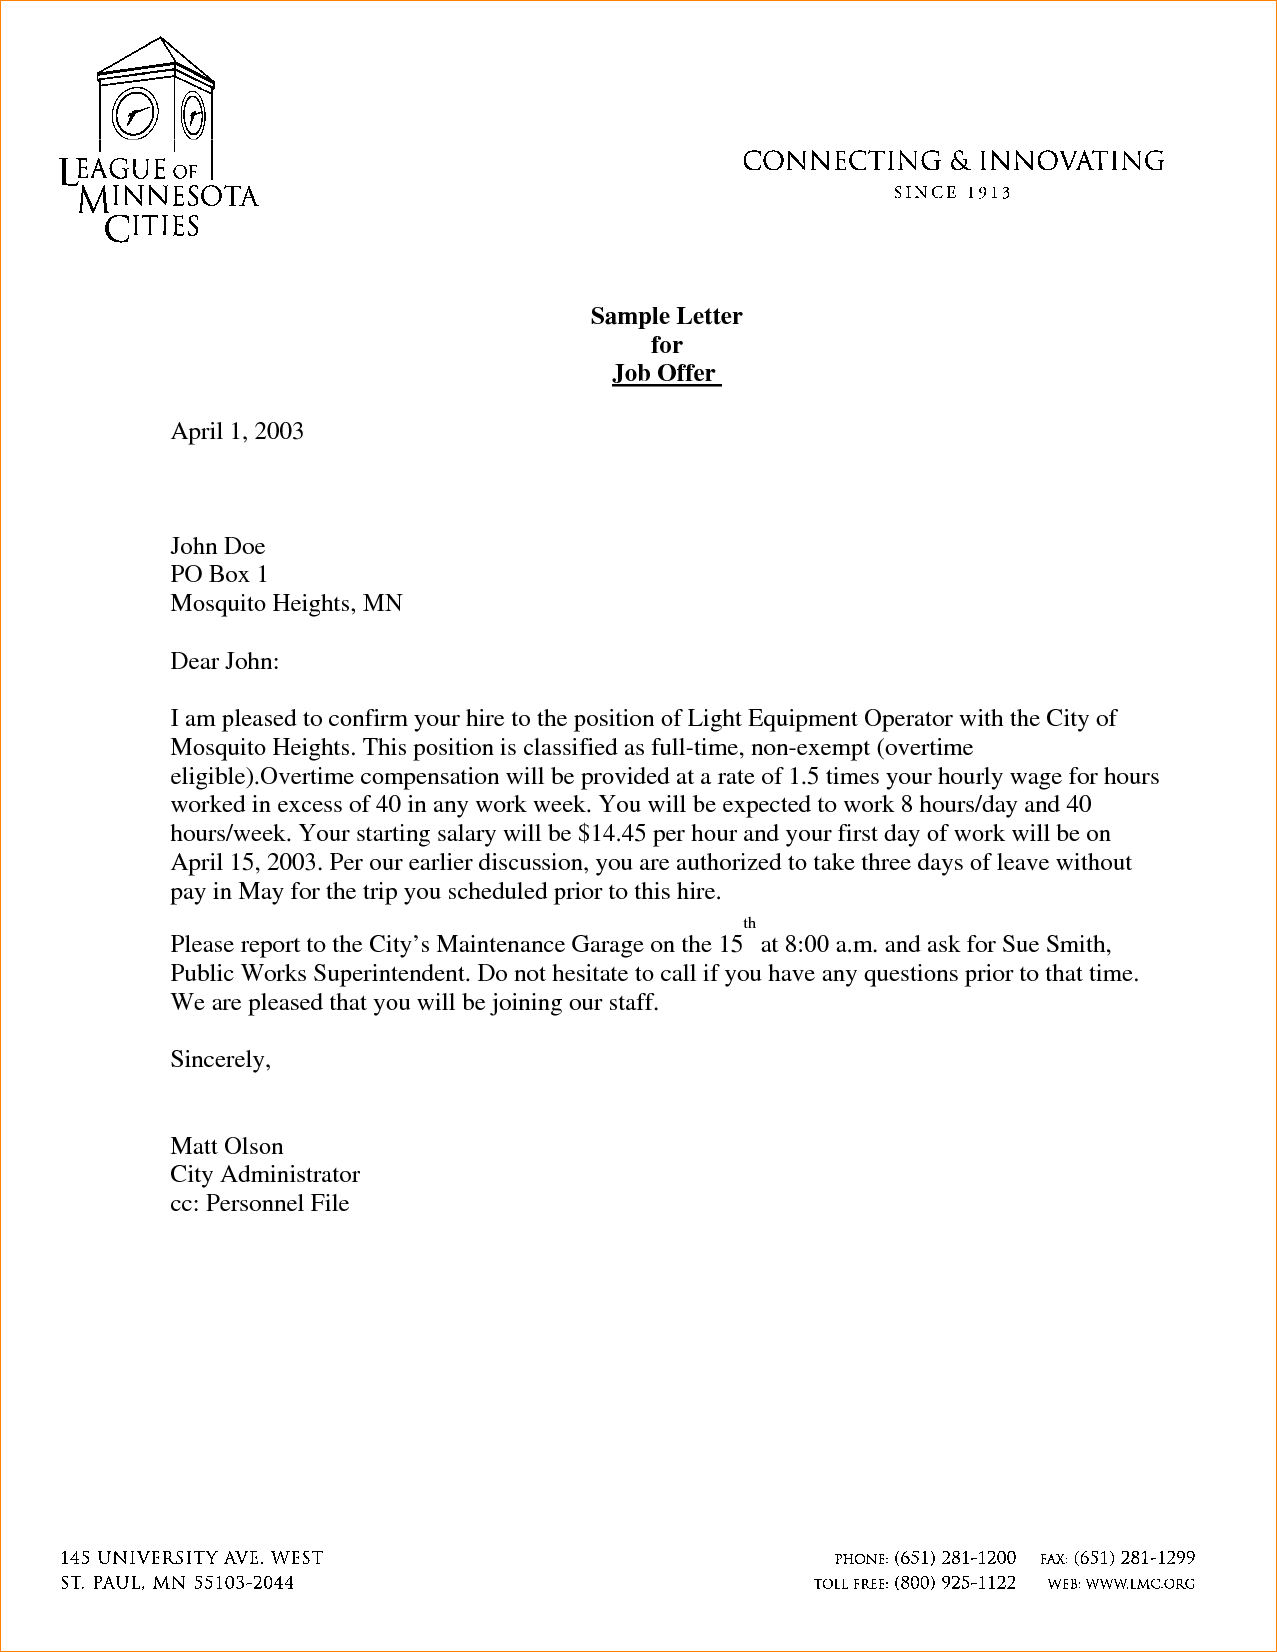 Job Offer Letter Format from www.samplesdownloadblog.com